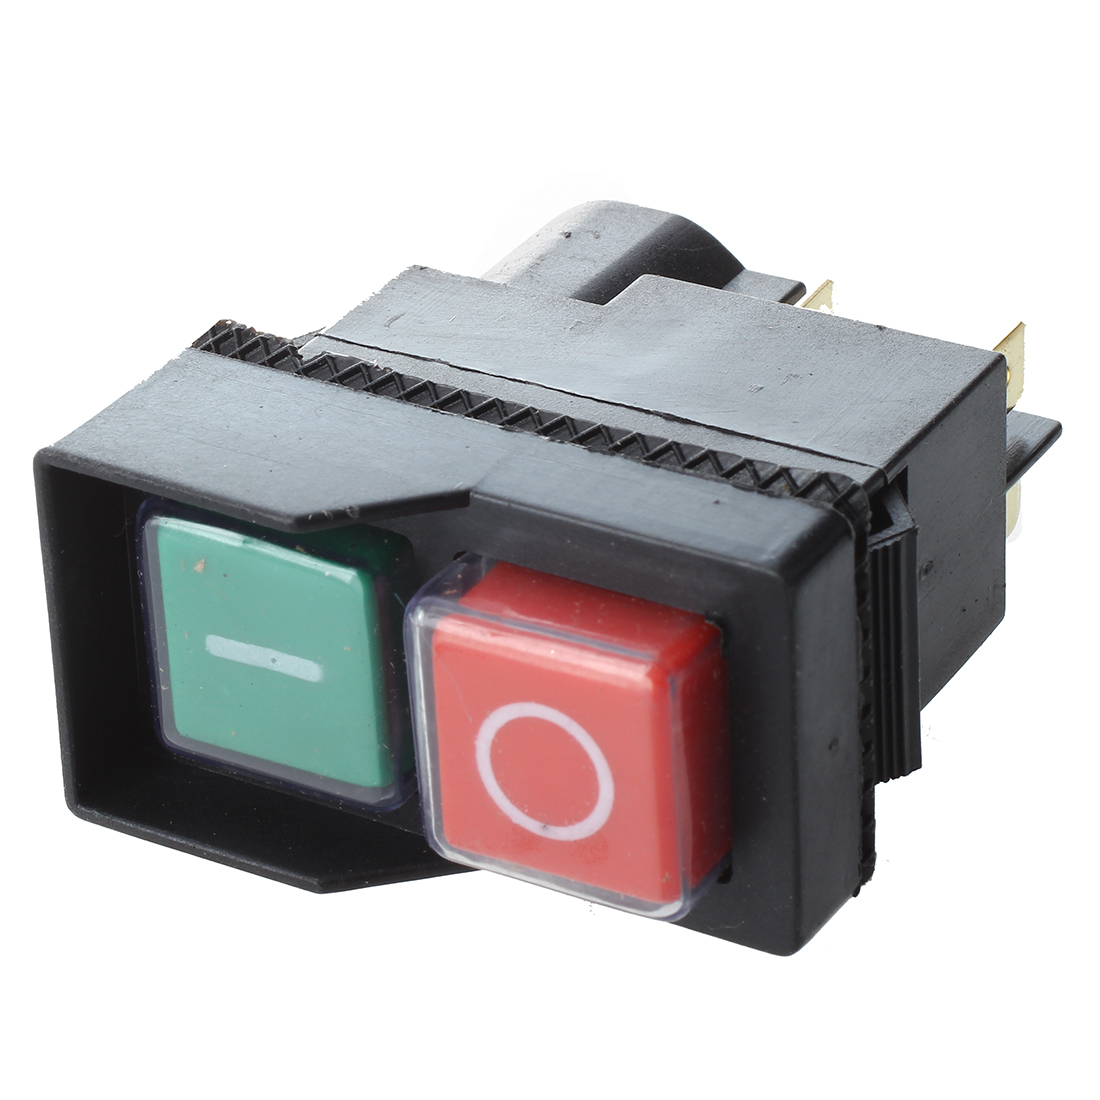 CK21 Electromagnetic switch For Cement Concrete Mixers 240V